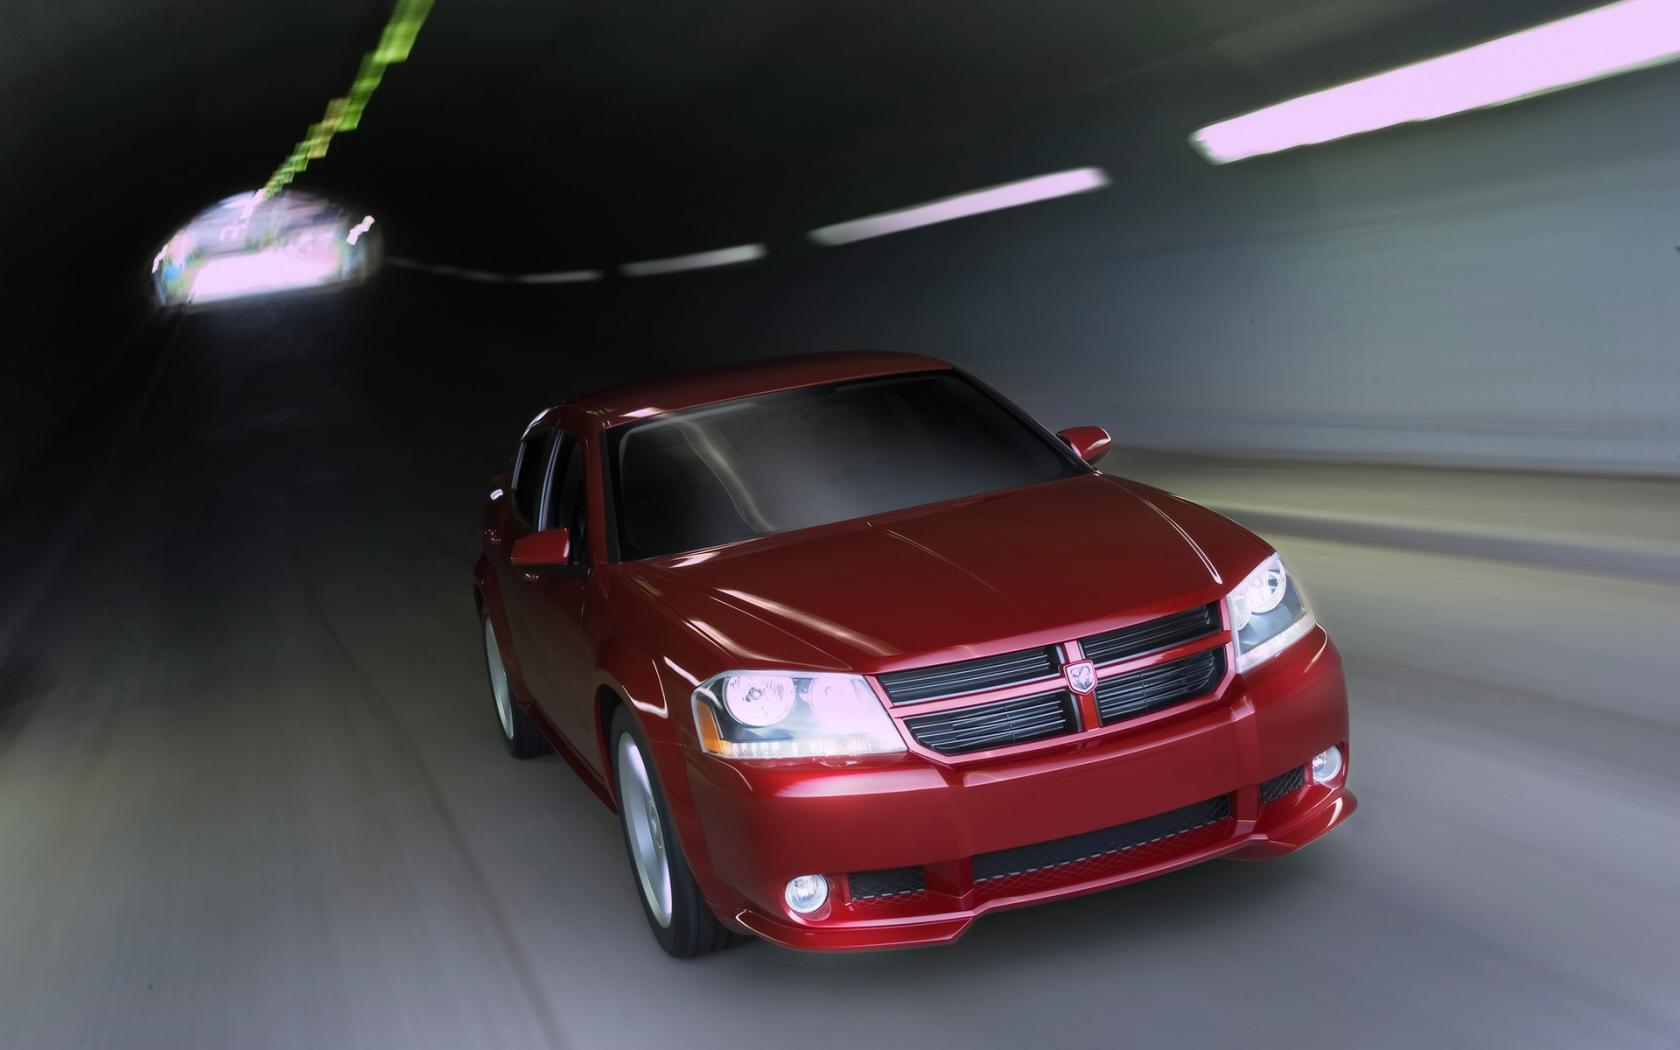 2006 Dodge Avenger Concept Front Angle Drive 1680x1050